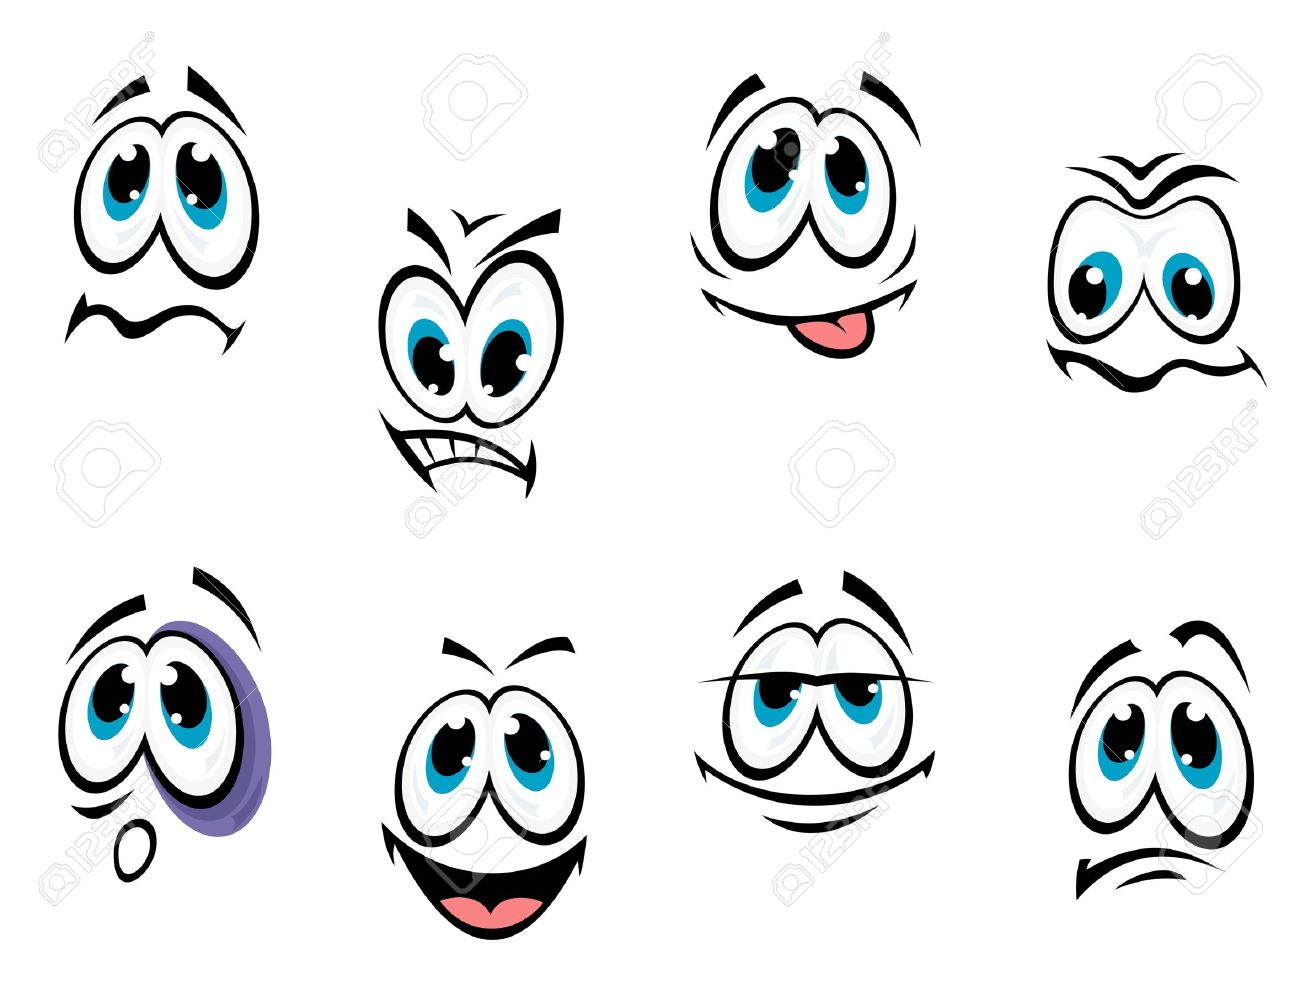 Comics cartoon faces set with different expressions isolated on white background Stock Vector - 13603953